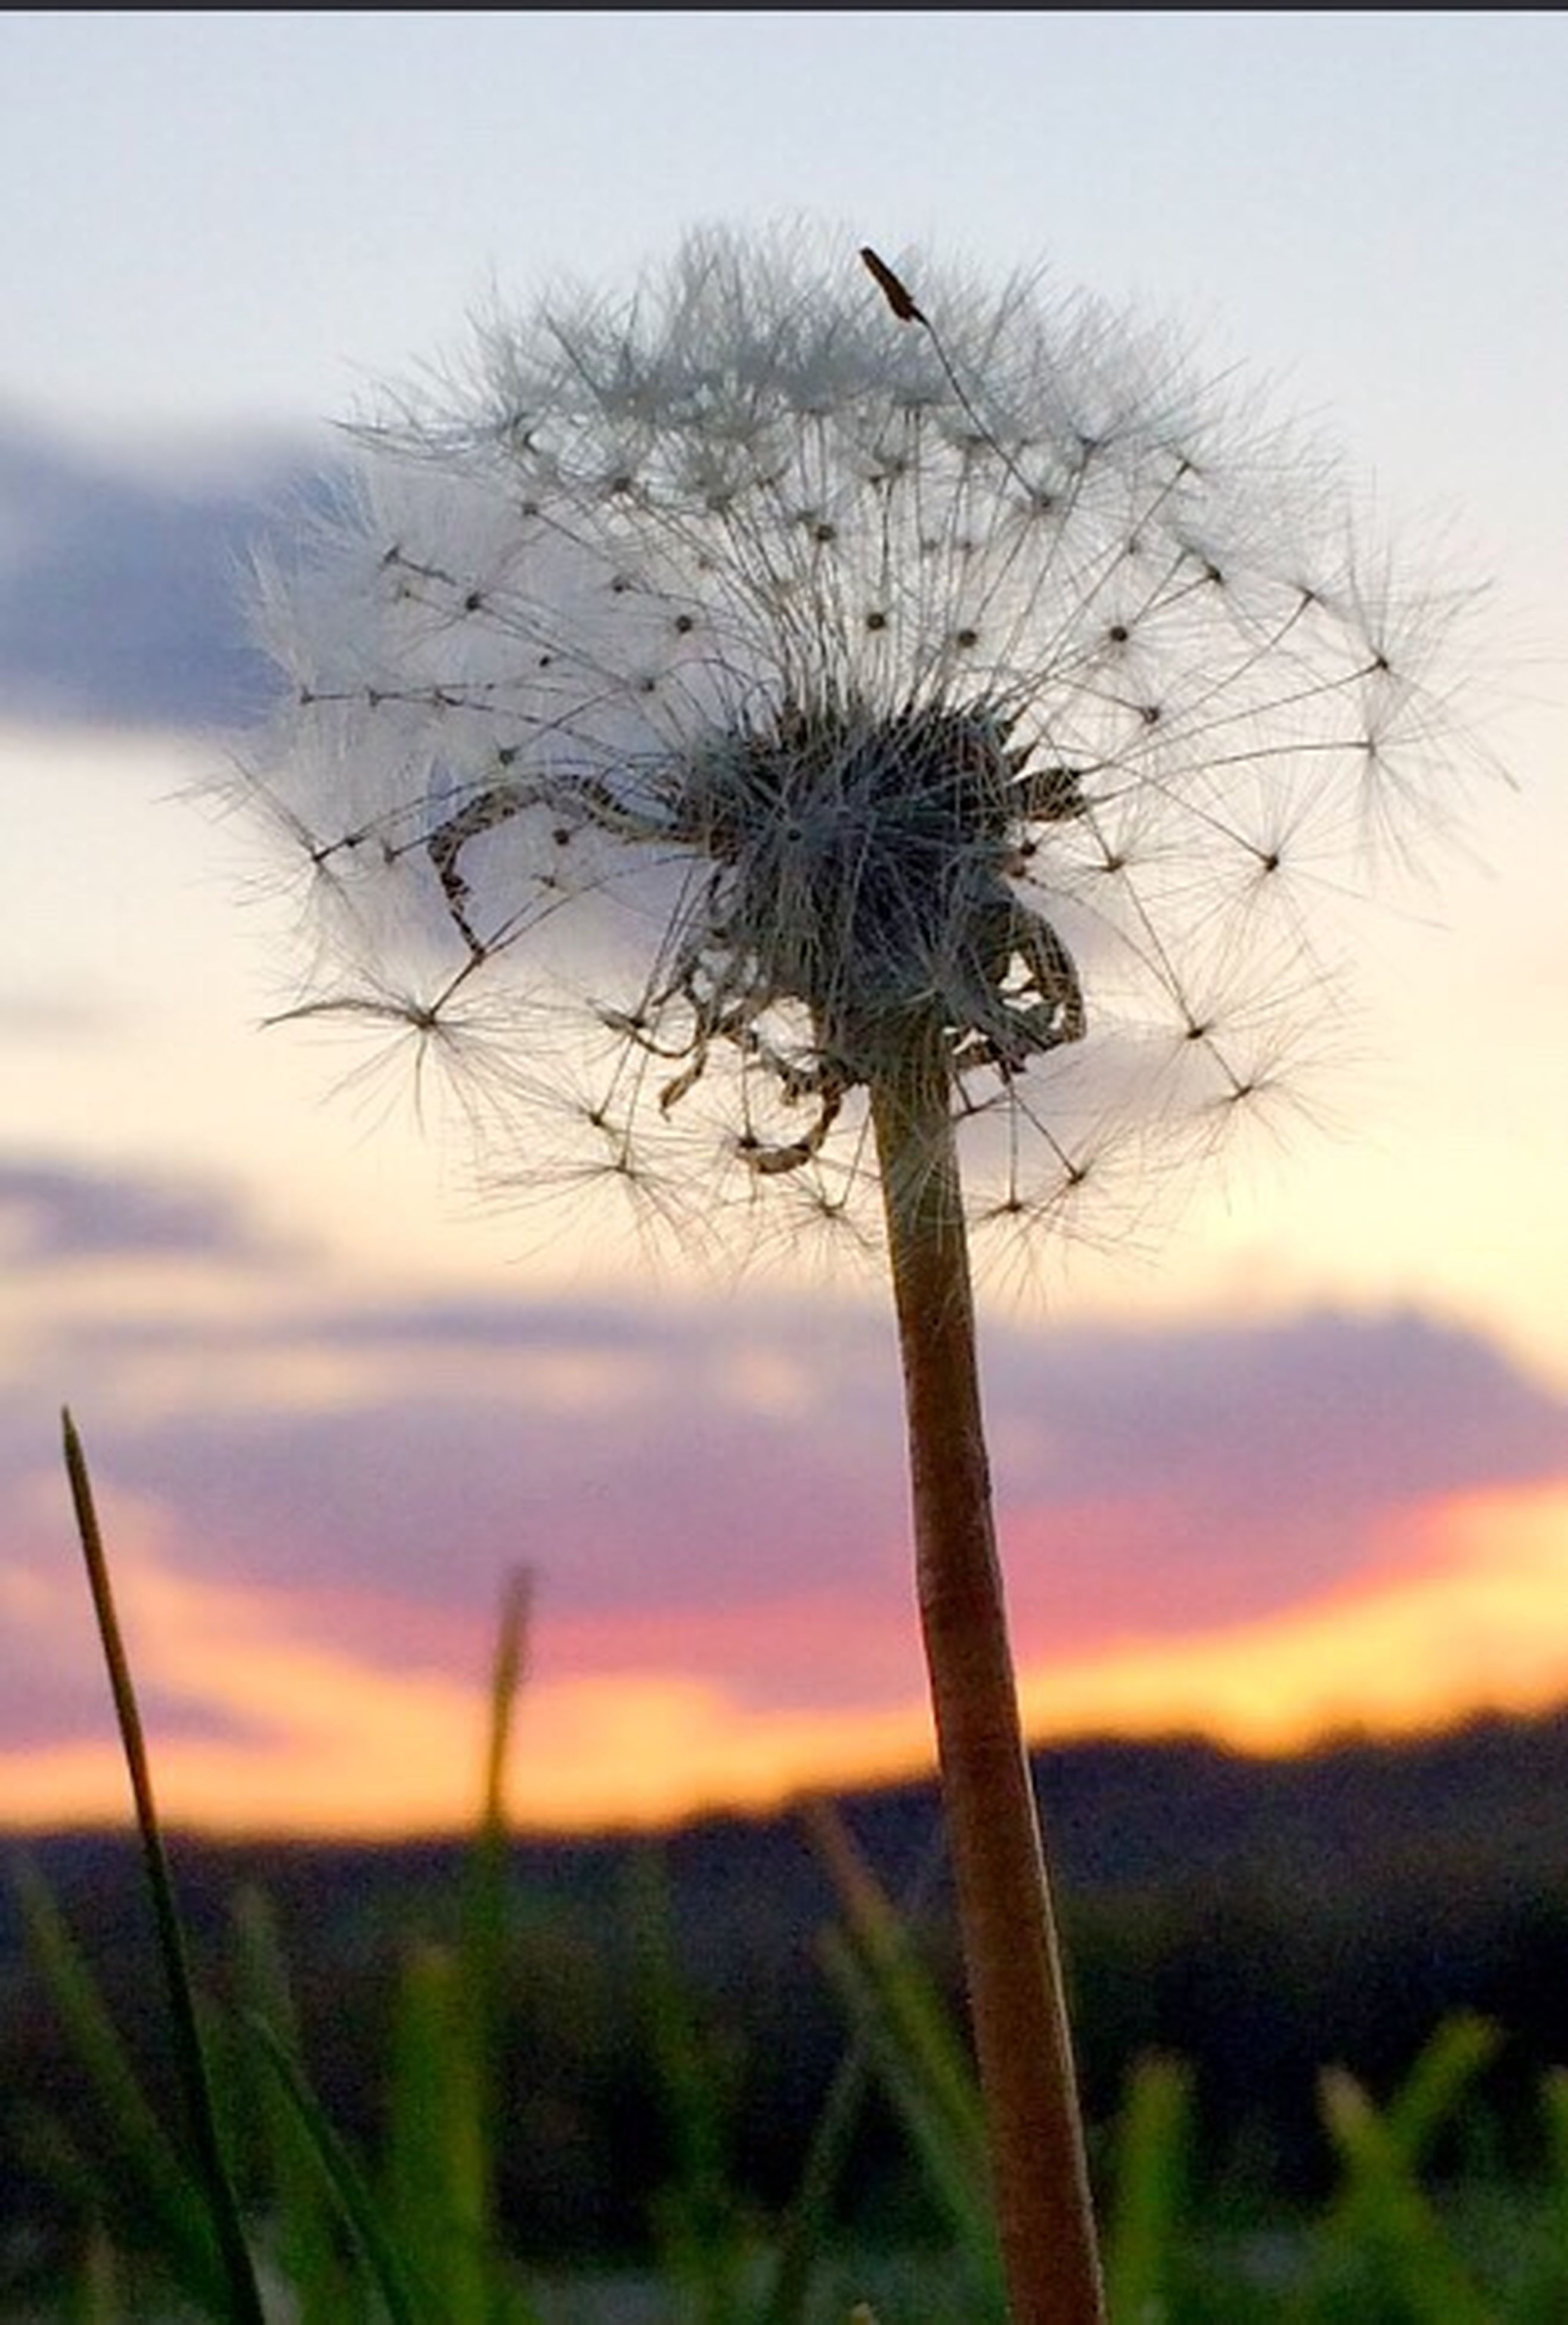 dandelion, growth, flower, stem, focus on foreground, close-up, plant, fragility, nature, sunset, beauty in nature, sky, field, freshness, tranquility, selective focus, outdoors, uncultivated, flower head, no people